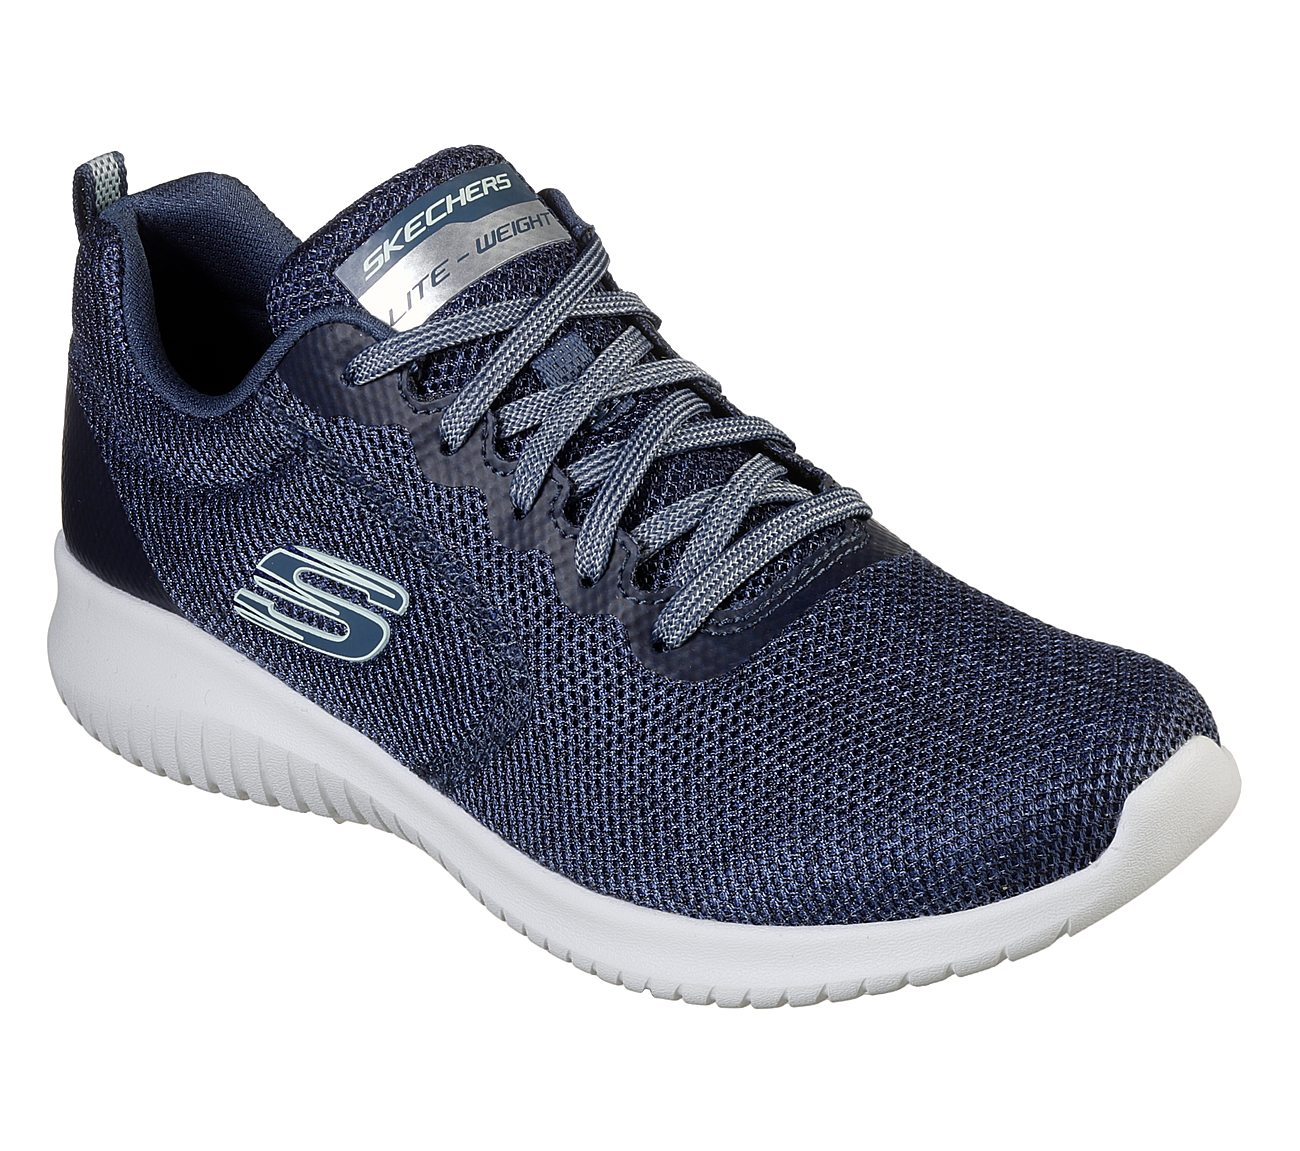 Skechers Ladies Ultra Flex Tie Trainer 13111